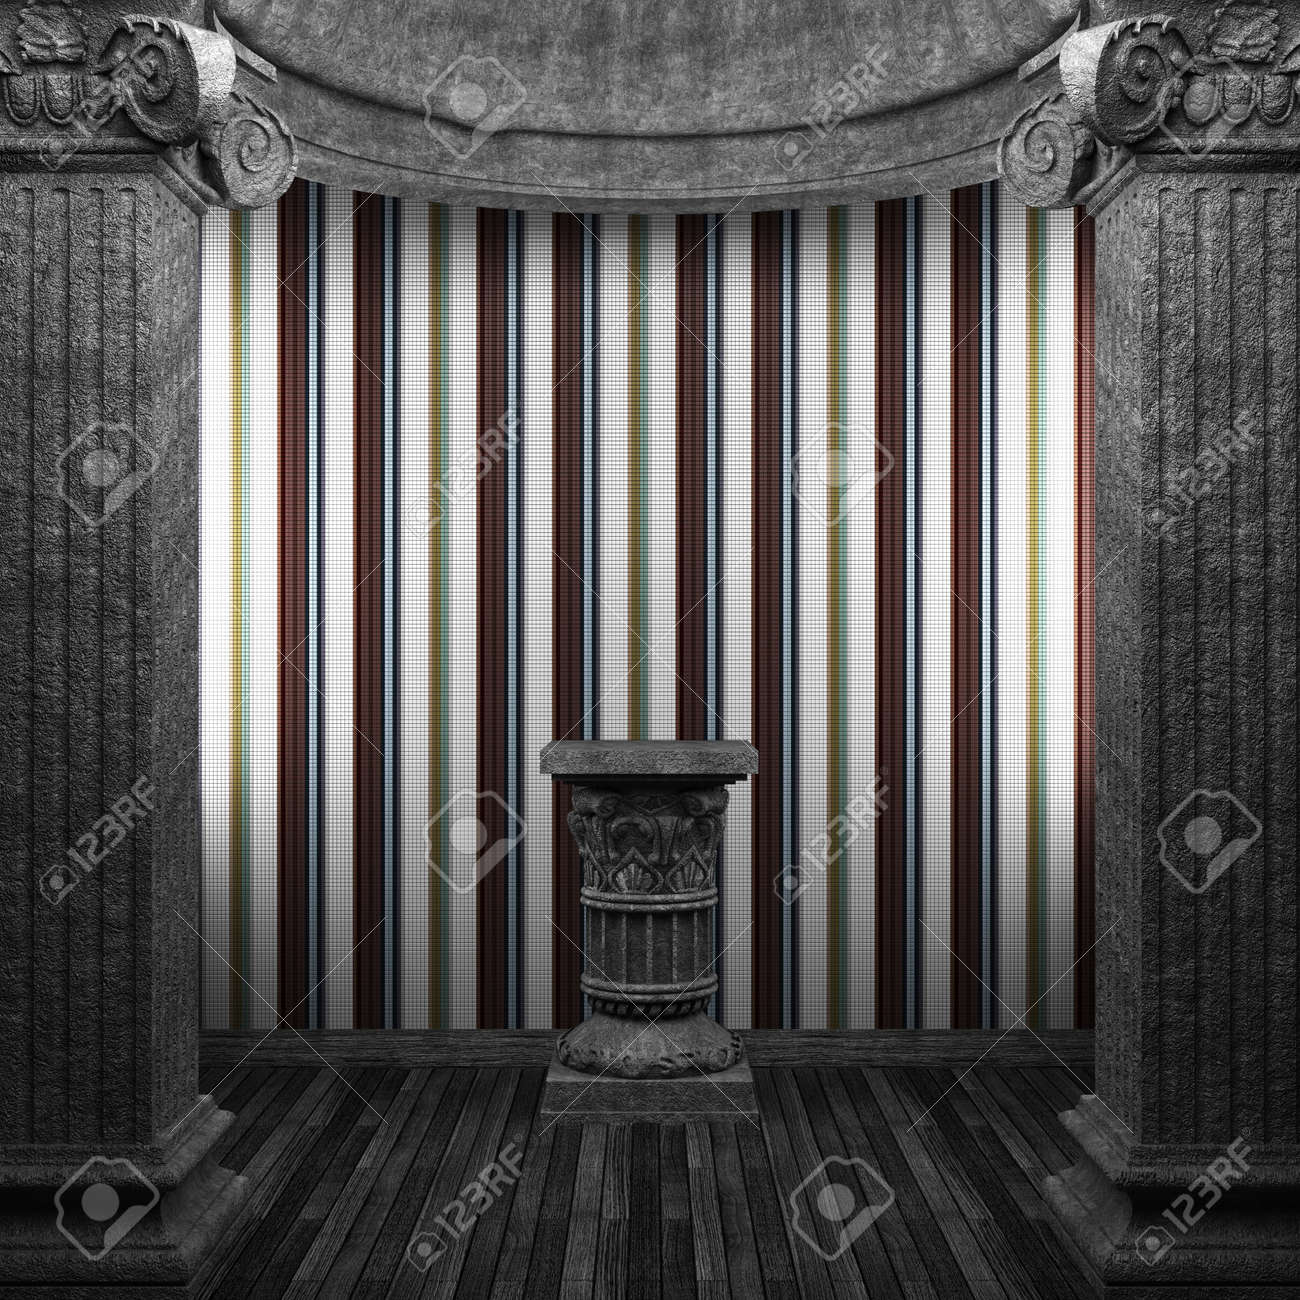 stone columns, pedestal and tile wall Stock Photo - 8502893